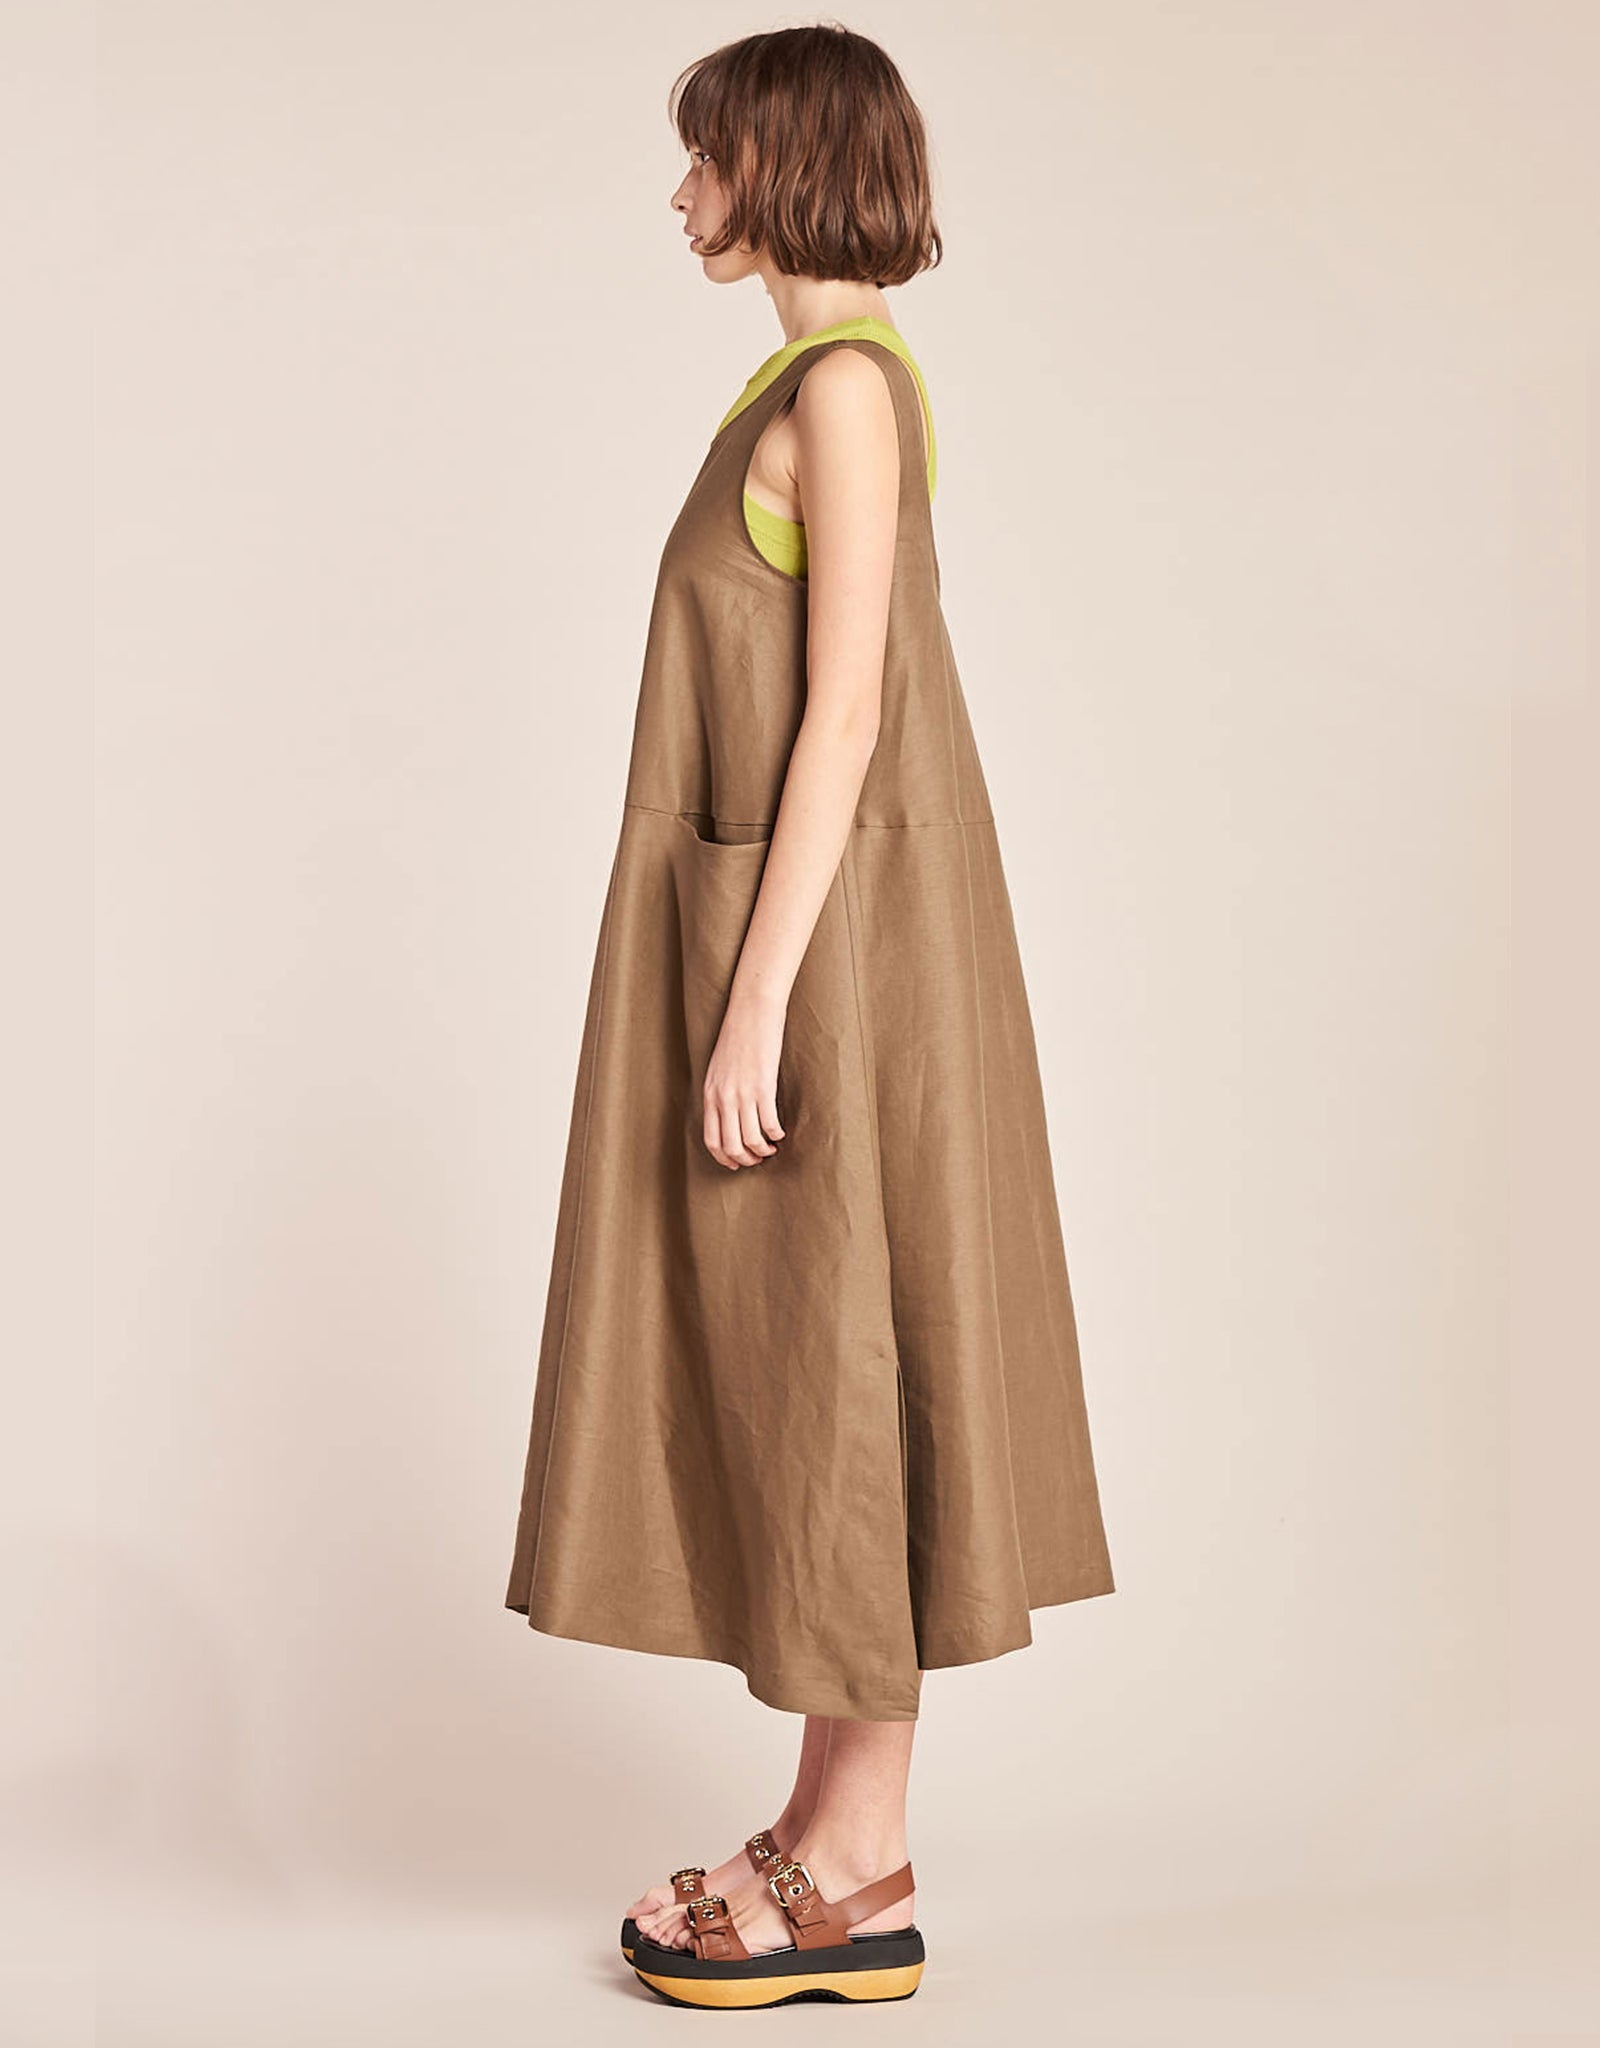 Model wears Kloke Luna Dress in Tobacco, styled layered over tank, side. Available at FAWN Toronto.